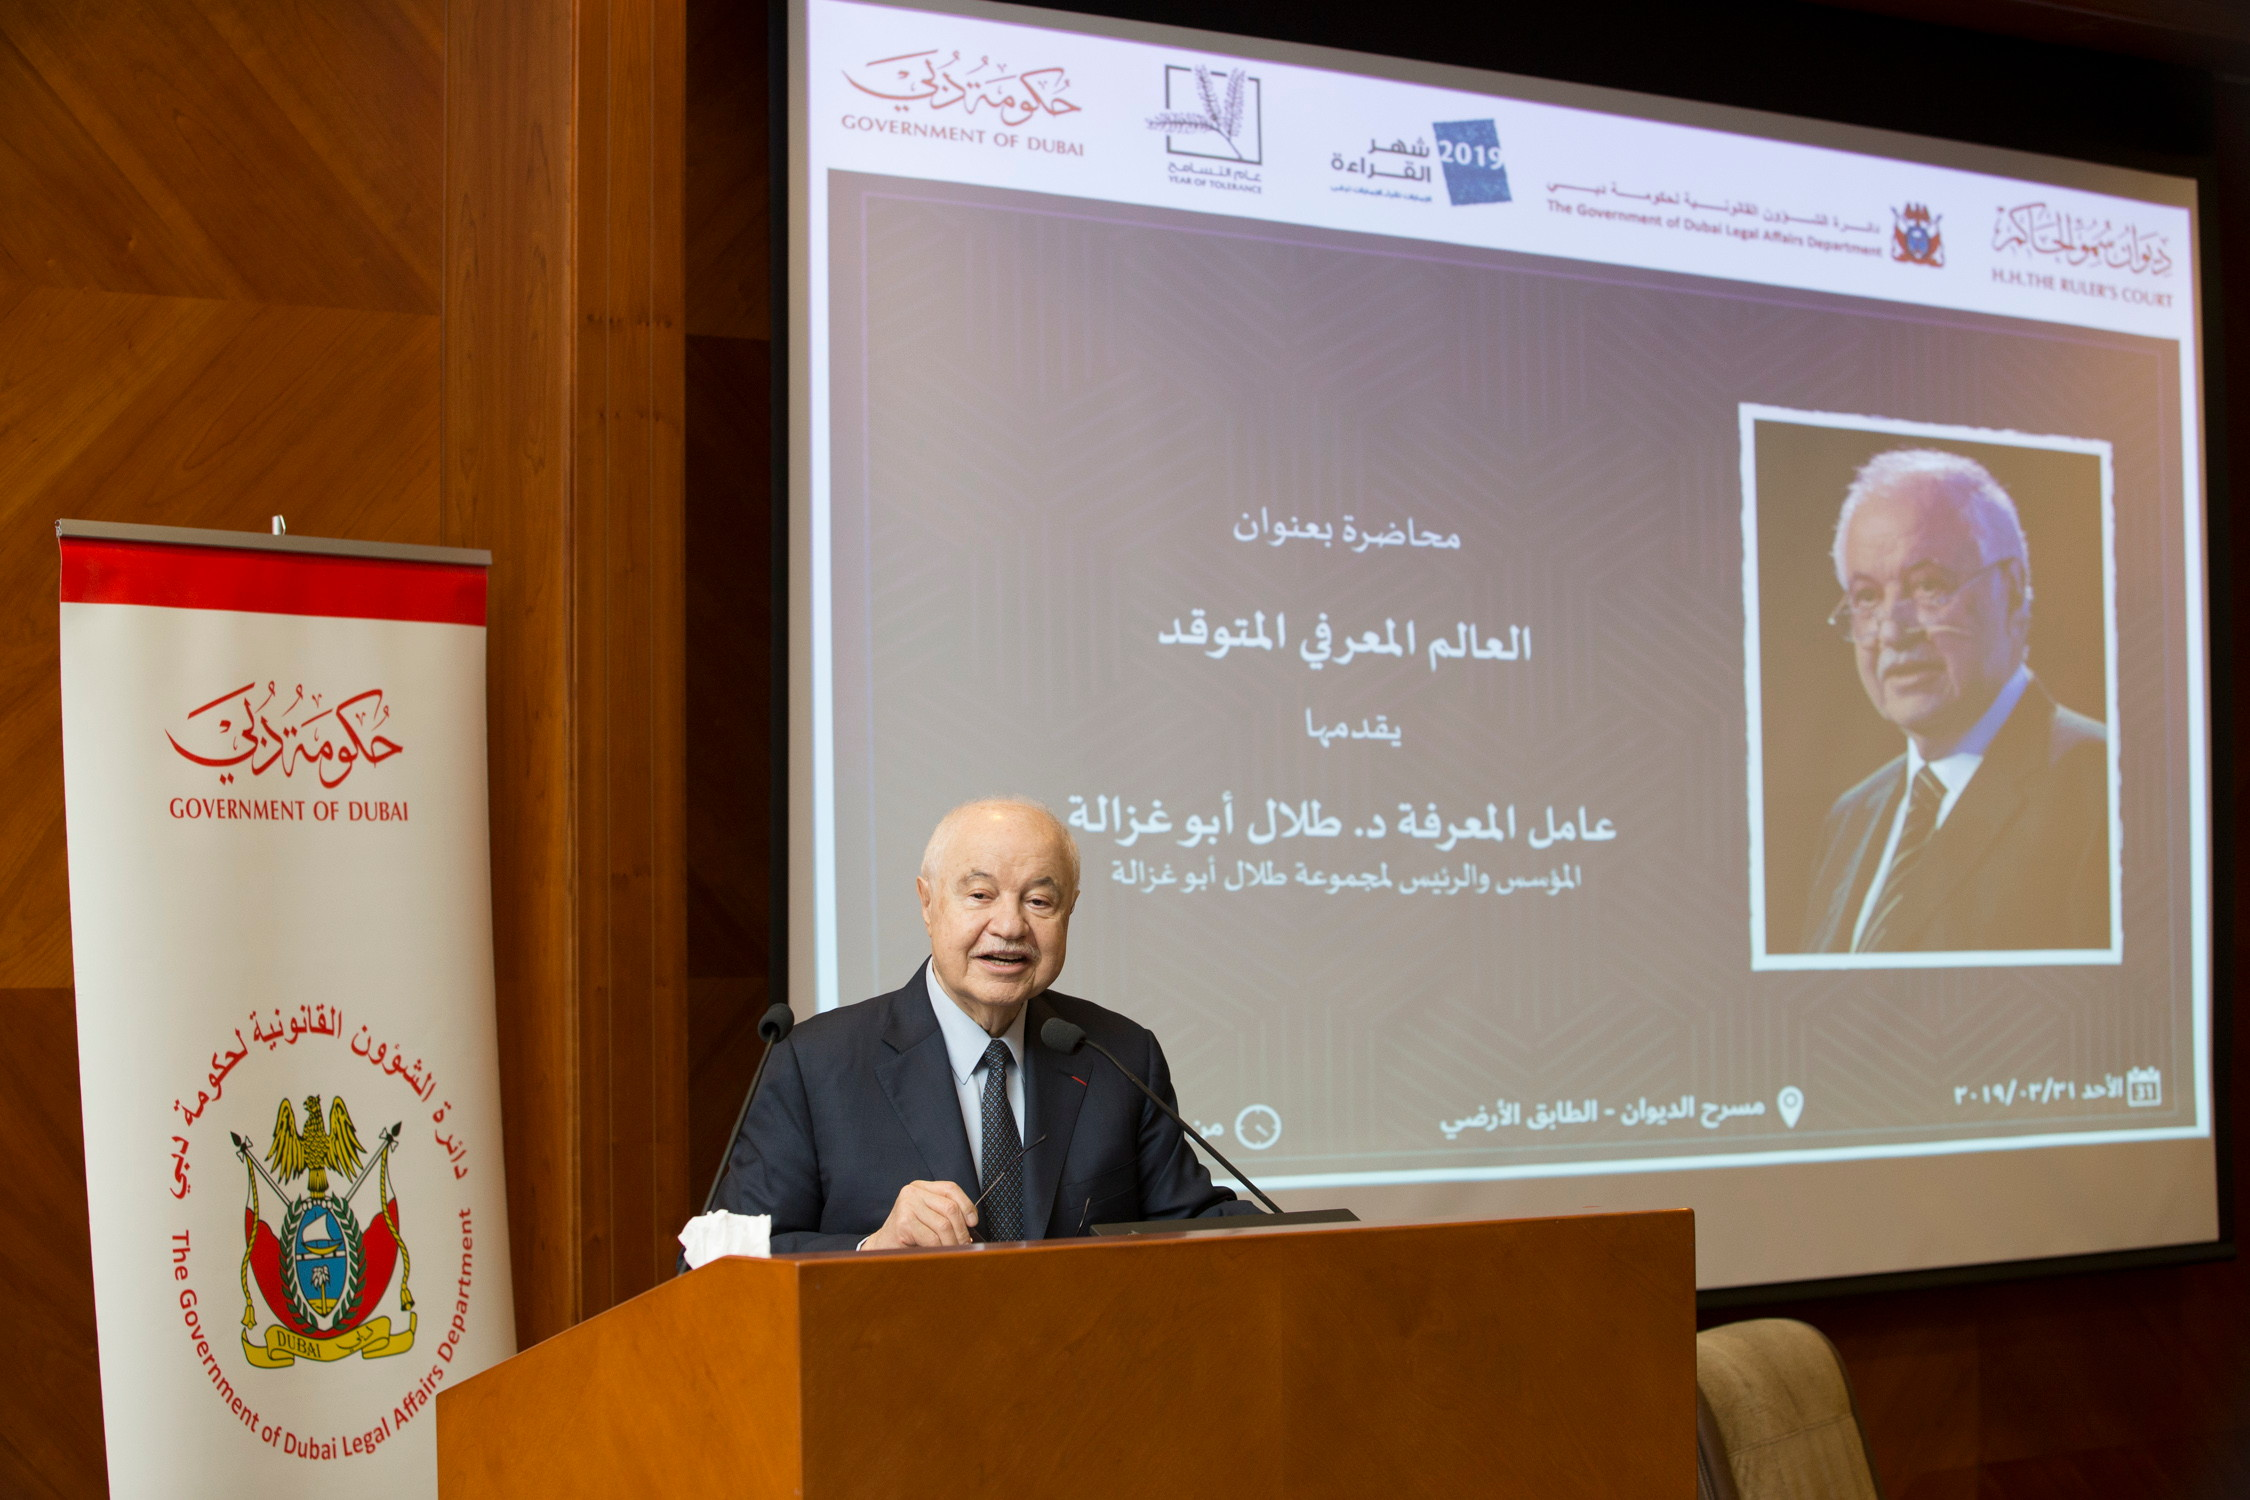 As part of the Month of Reading, H.H. The Ruler's Court, in cooperation with The Legal Affairs Department, hosts Dr. Talal Abu-Ghazaleh